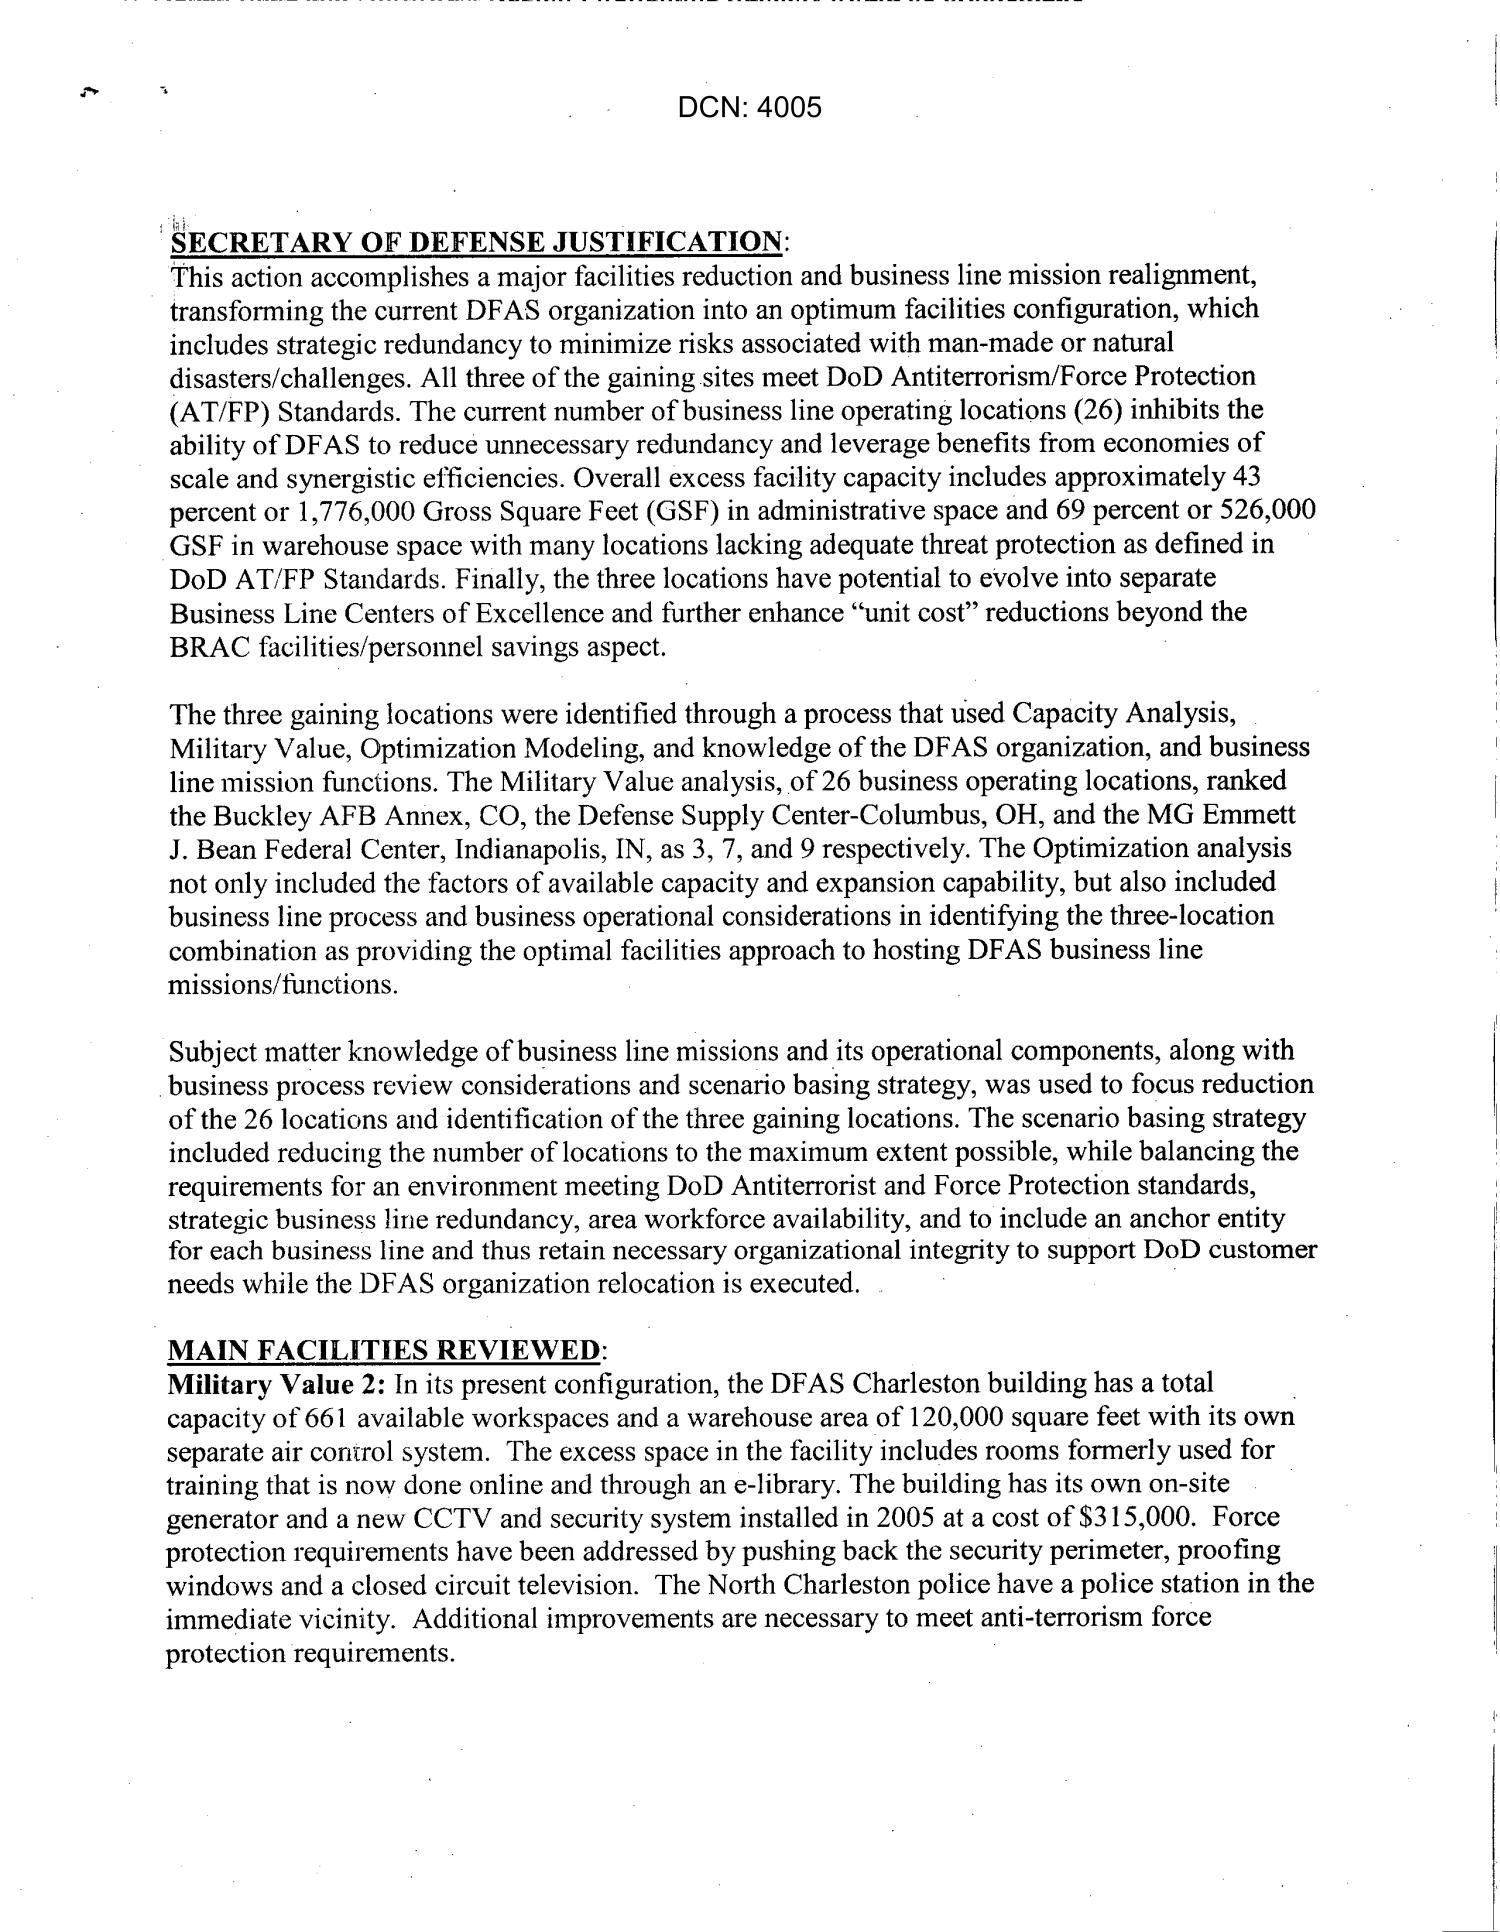 Base Visit Report from BRAC Commission Visit to DFAS Charleston, SC dtd 7 June 2005                                                                                                      [Sequence #]: 2 of 3